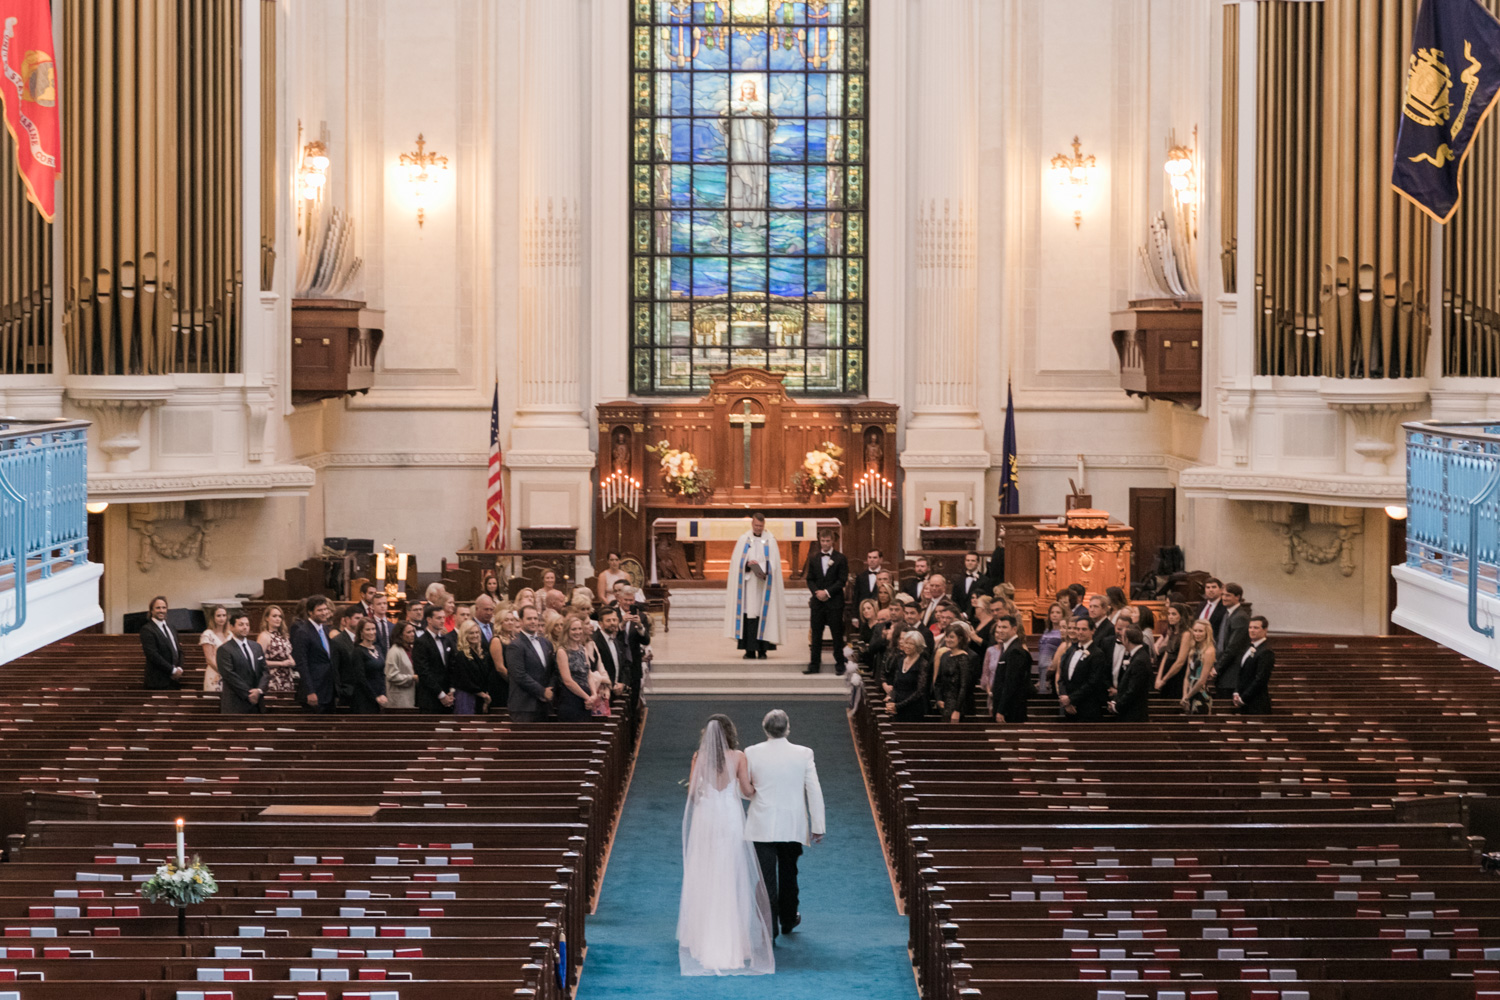 image of wedding ceremony at US Naval Academy chapel